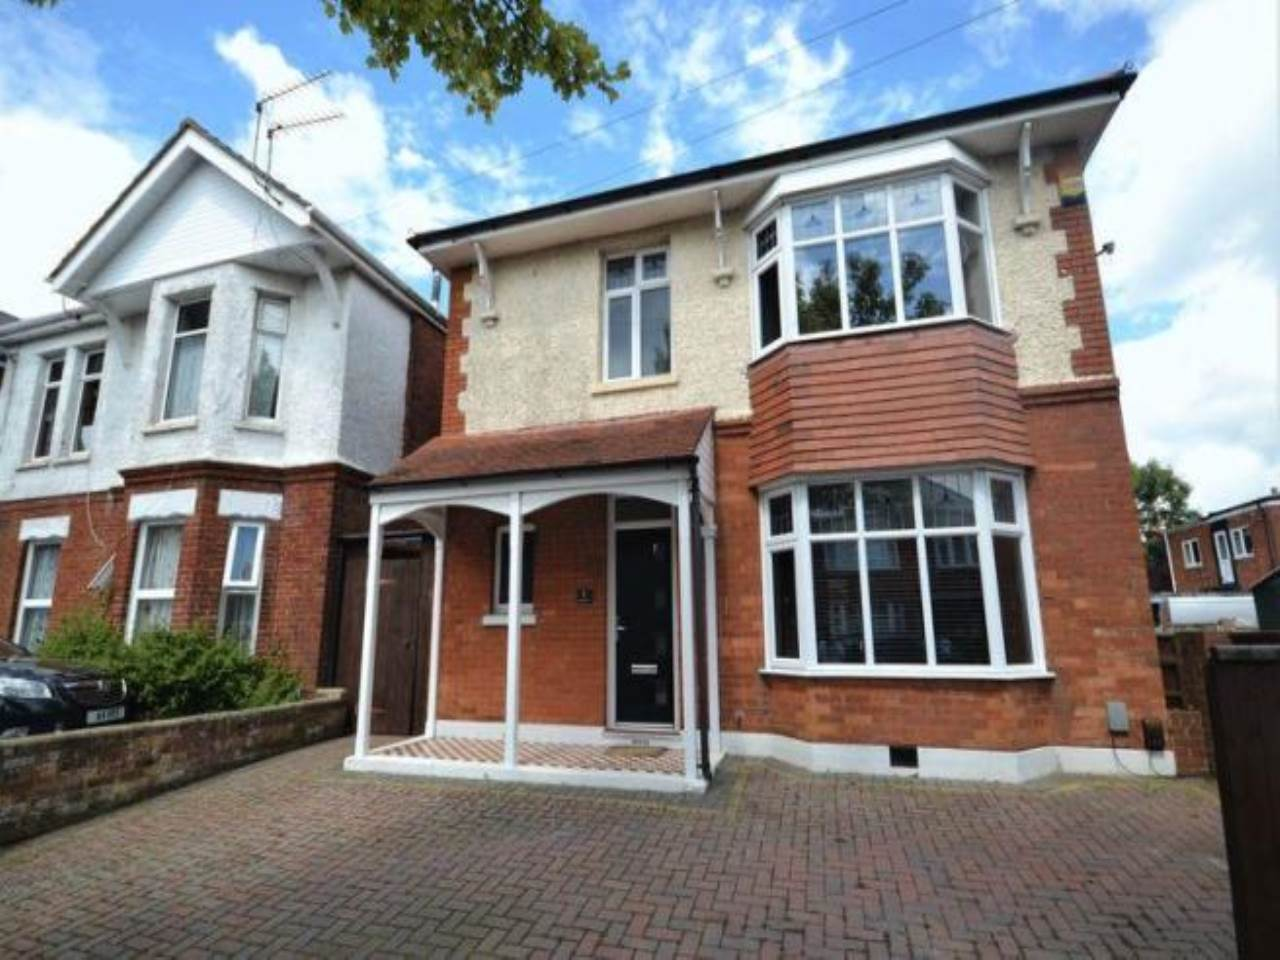 4 bed house for sale in Cowper Road, Moordown, BH9